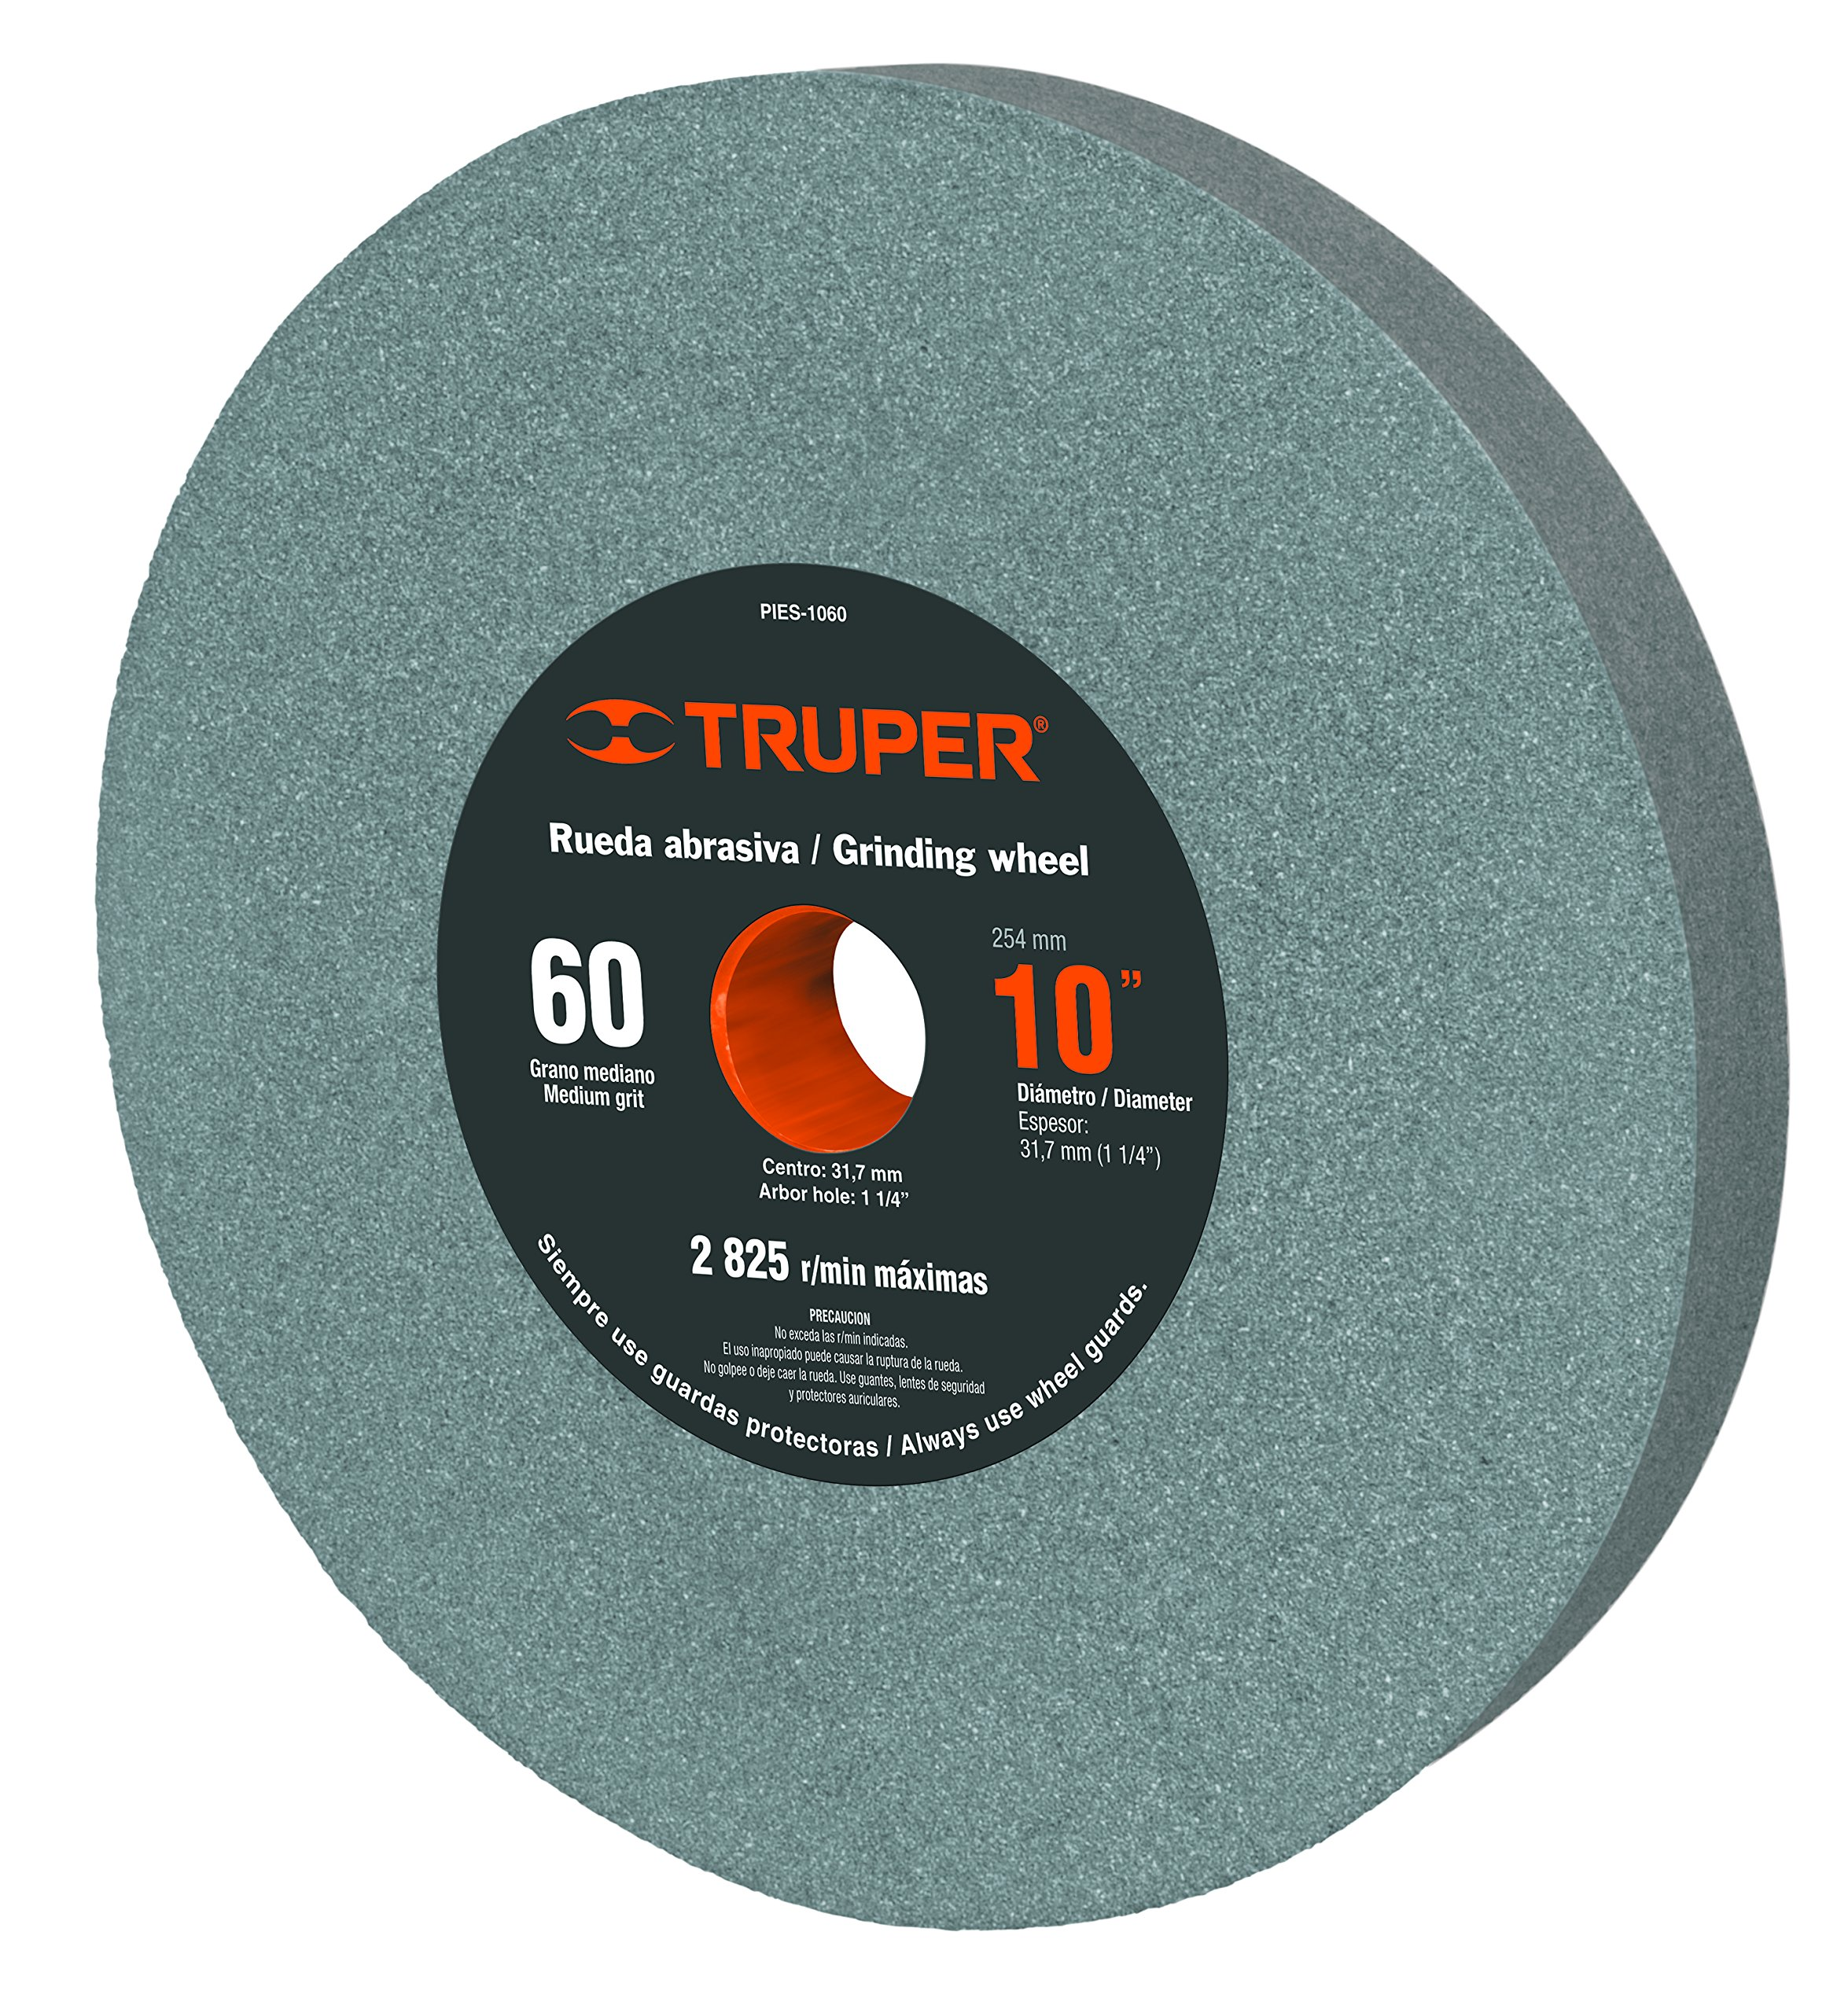 TRUPER PIES-1060 10'' Aluminum Oxide Bench Grinding Wheels. Grit=60, Thickness=1-1/4'', Drill=1-1/4''. 1 Pack